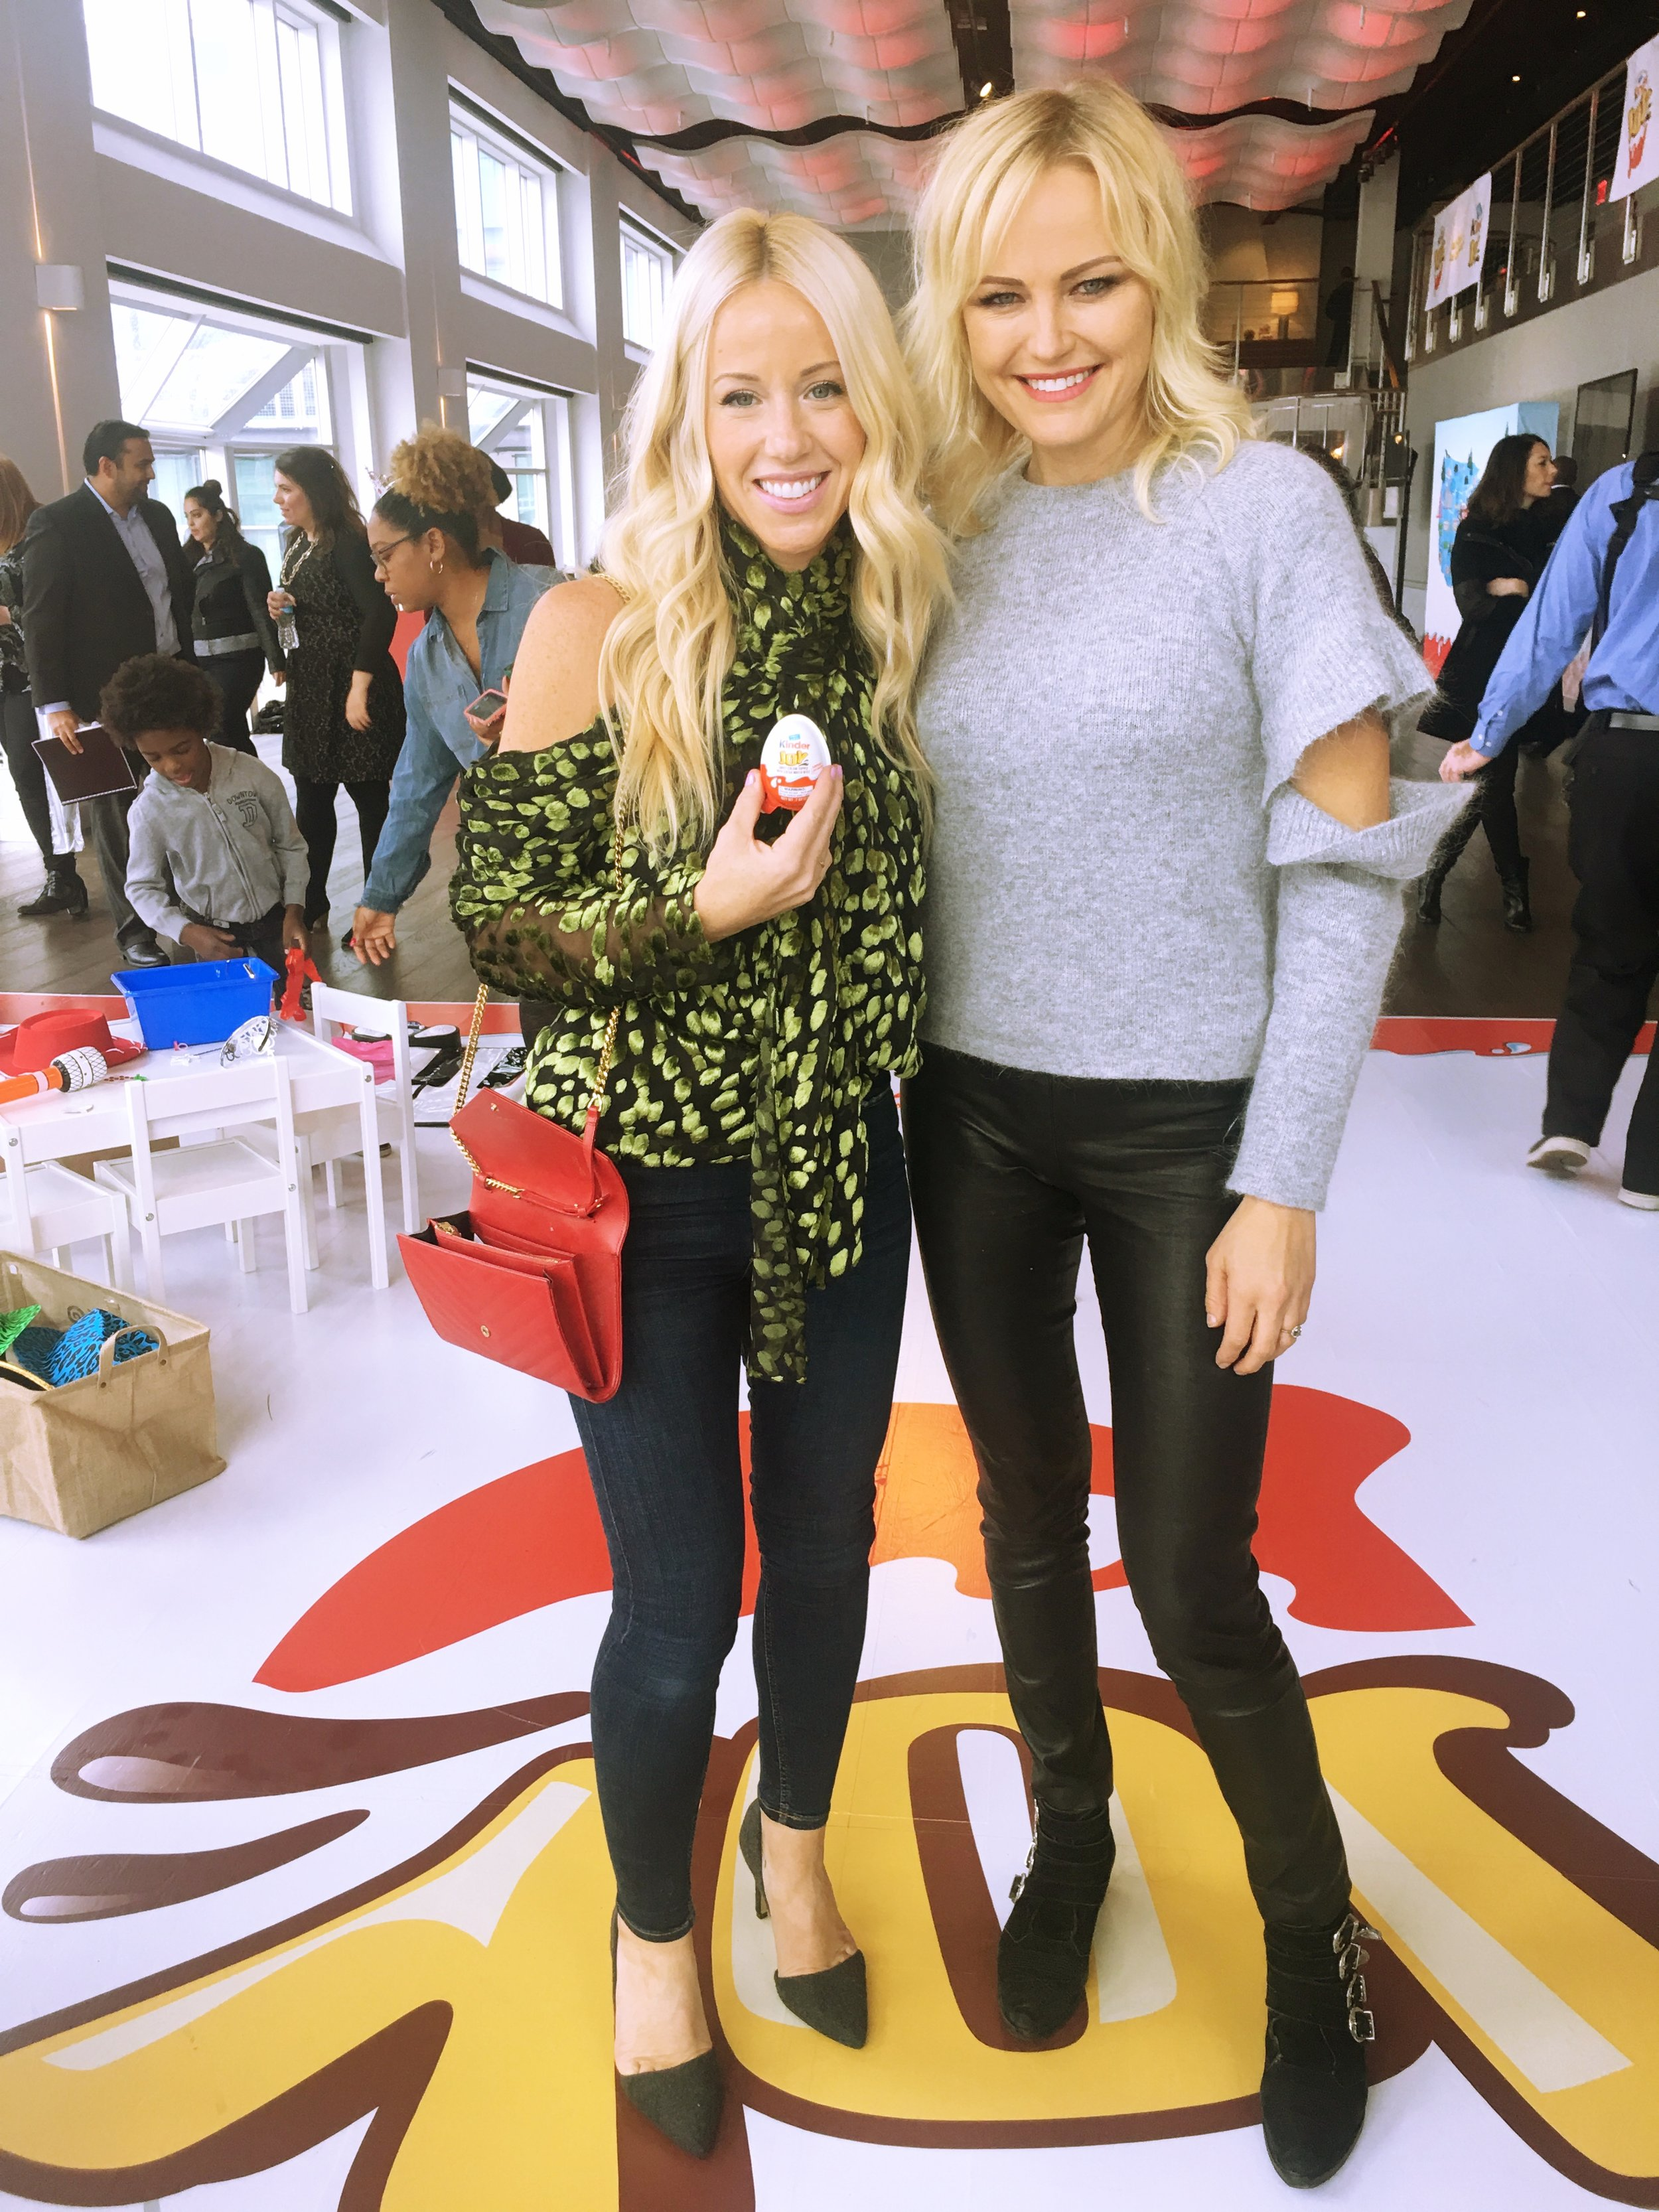 Mary Wassner with Malin Ackerman who loved eating Kinder Joy Eggs as a kid in Sweden.